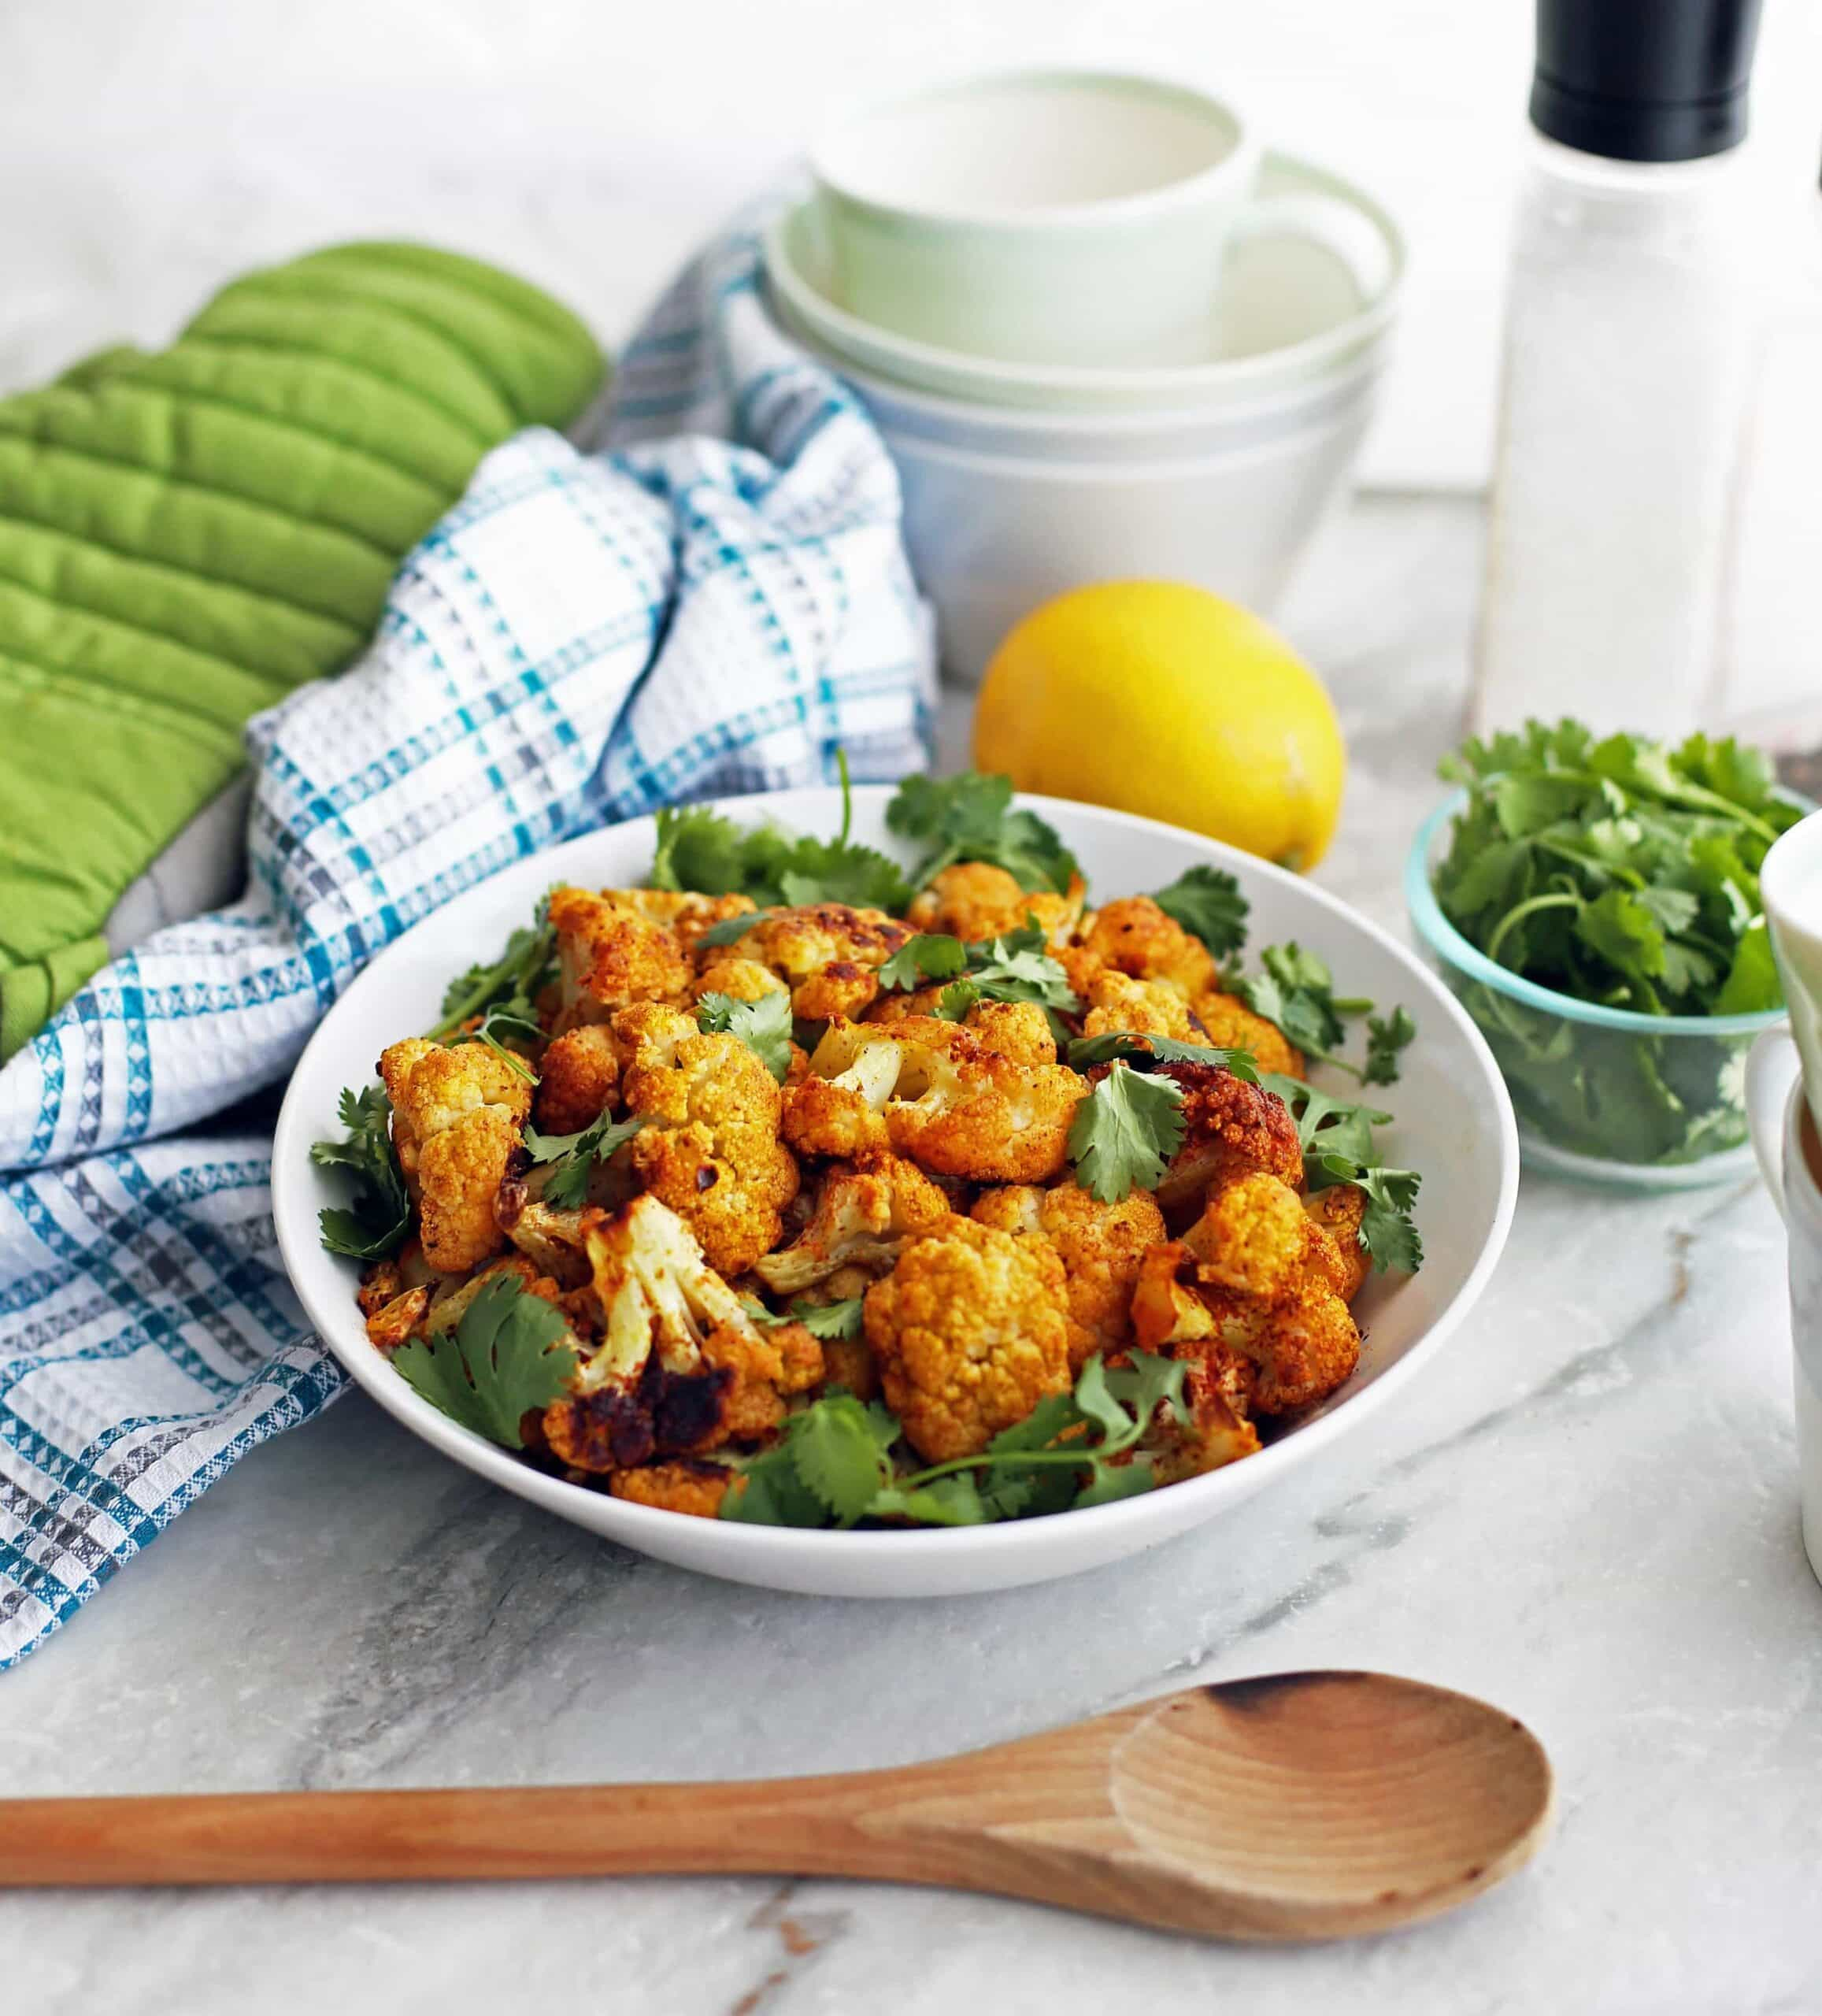 Roasted Spicy Cauliflower with Paprika and Turmeric